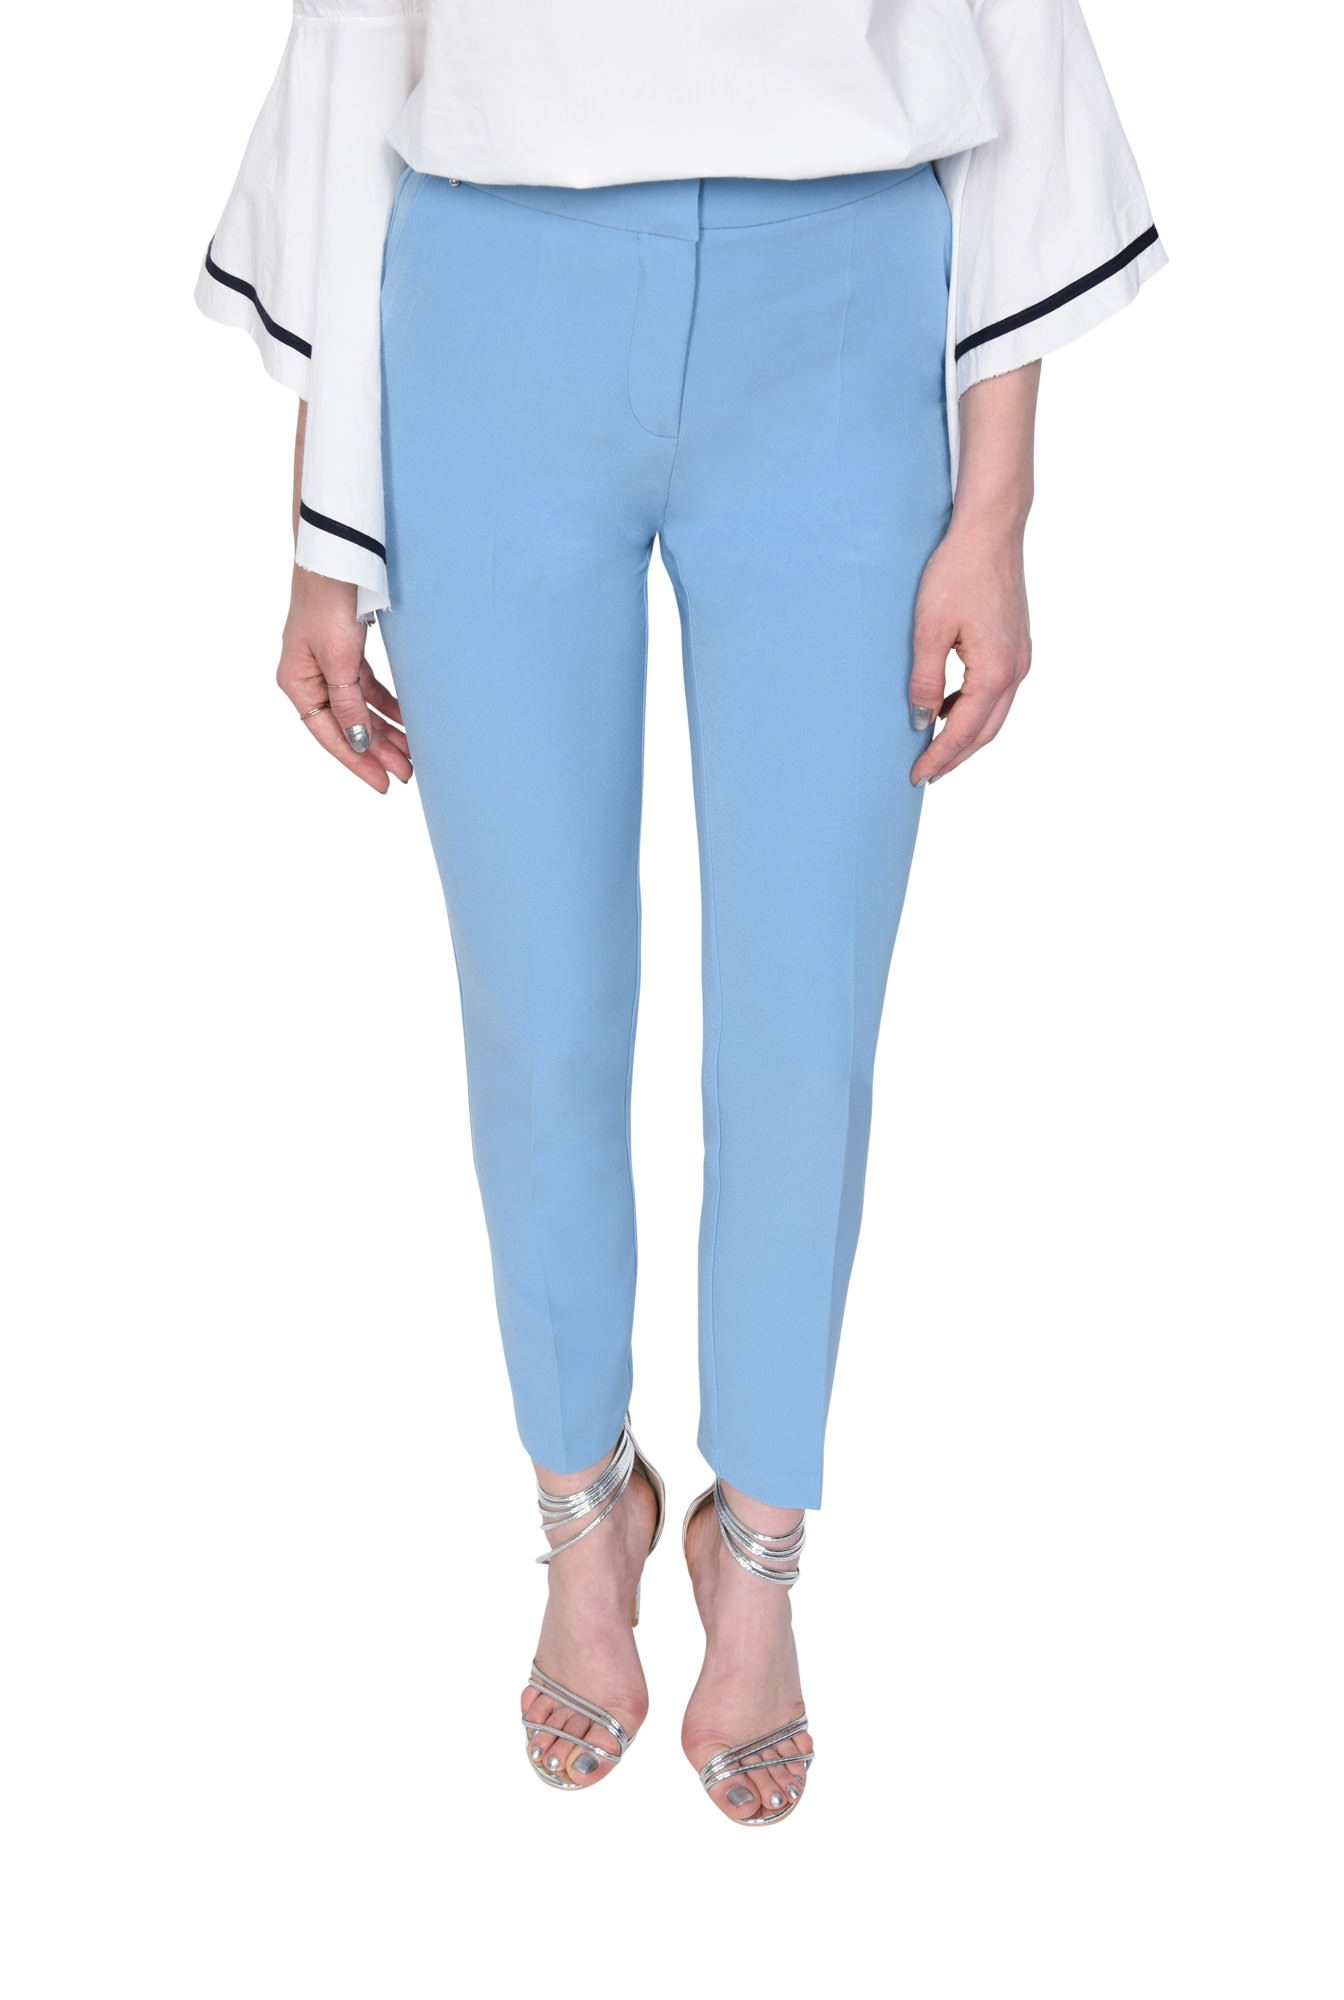 PANTALON OFFICE CONIC PT 142-BLEU